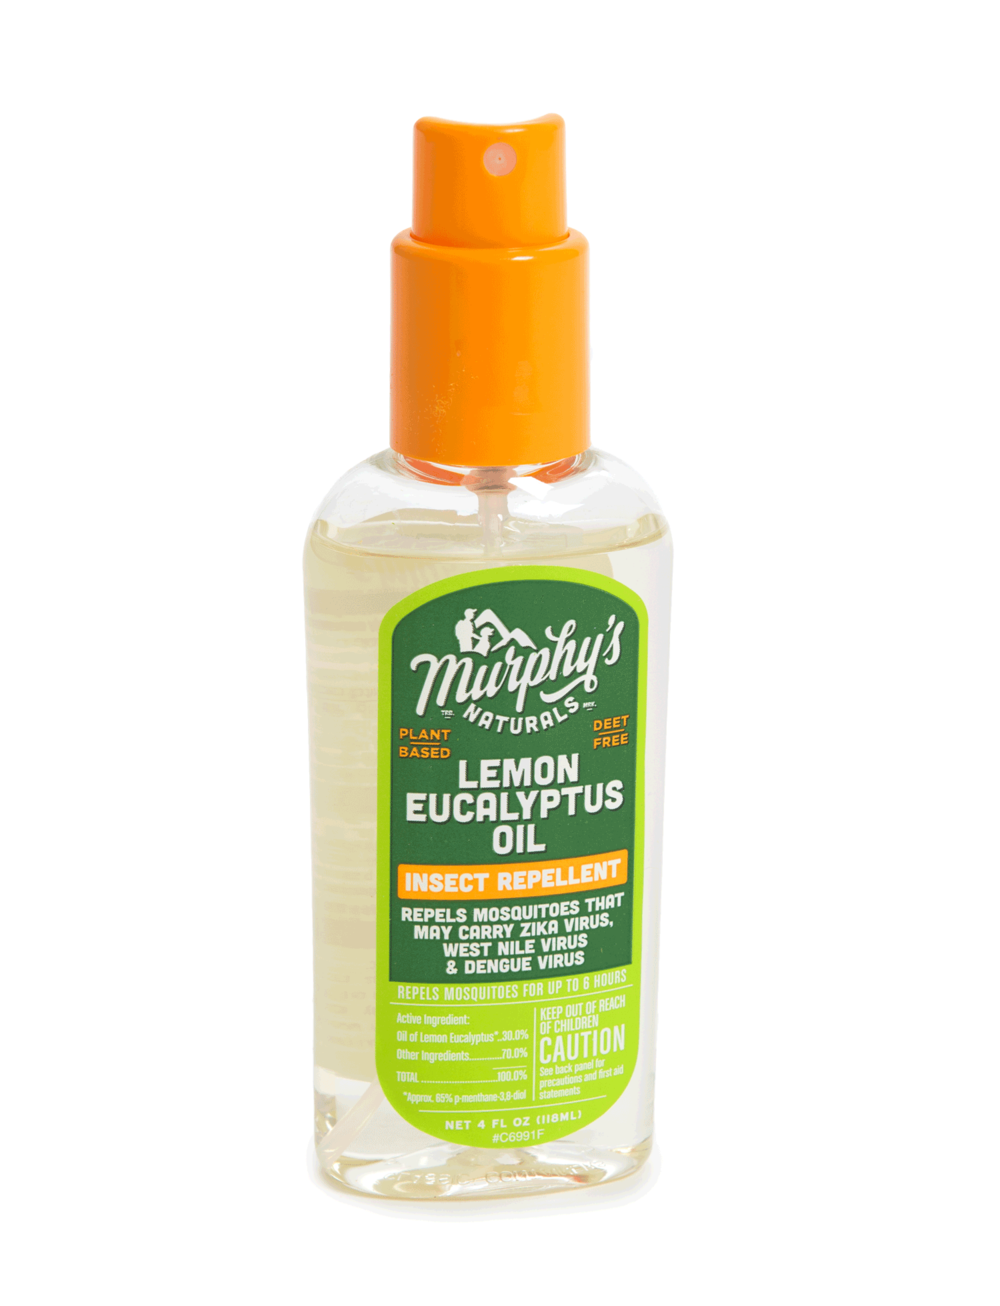 Murphys-Naturals-Lemon-Eucalyptus-Mosquito-Repellent-Spray copy.png